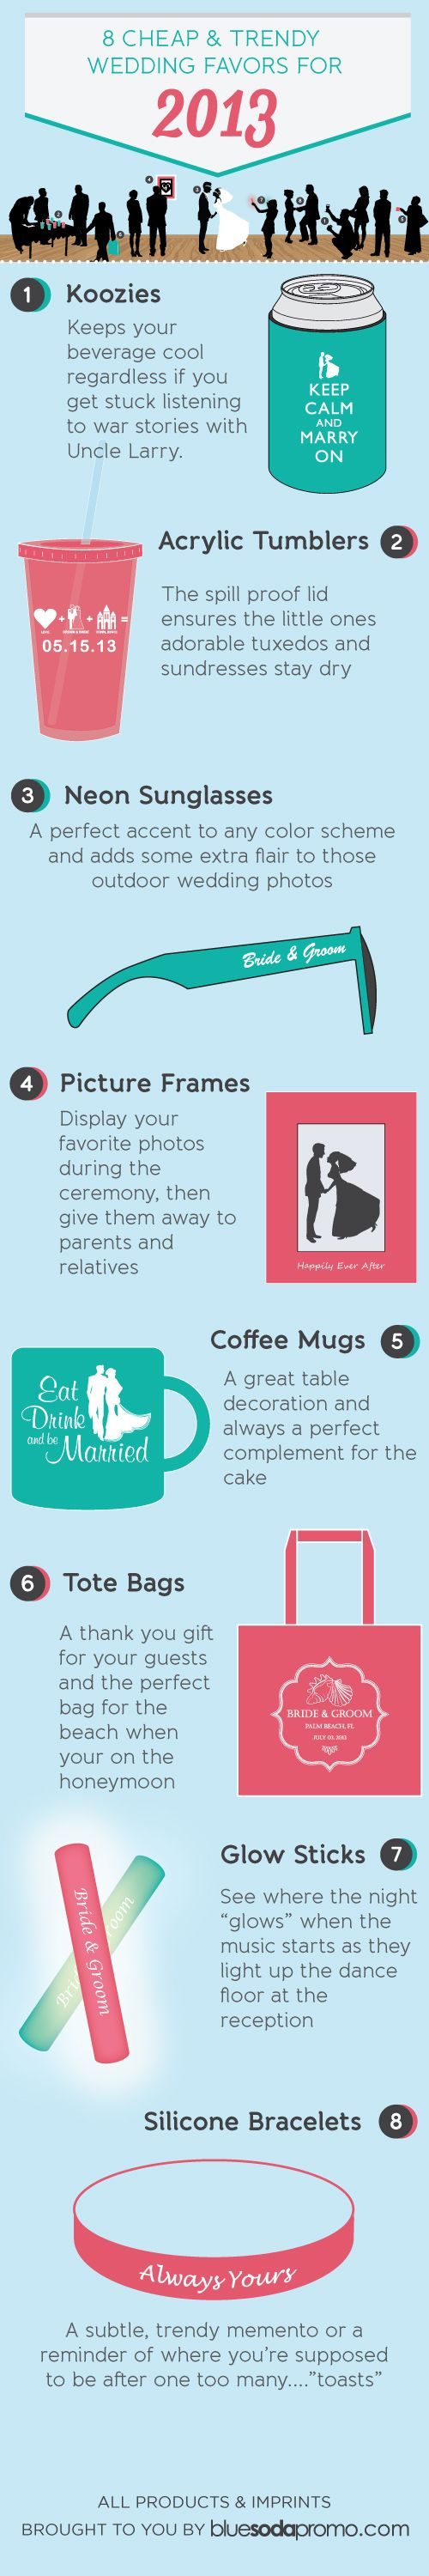 8 Cheap and Trendy Wedding Favors for 2013